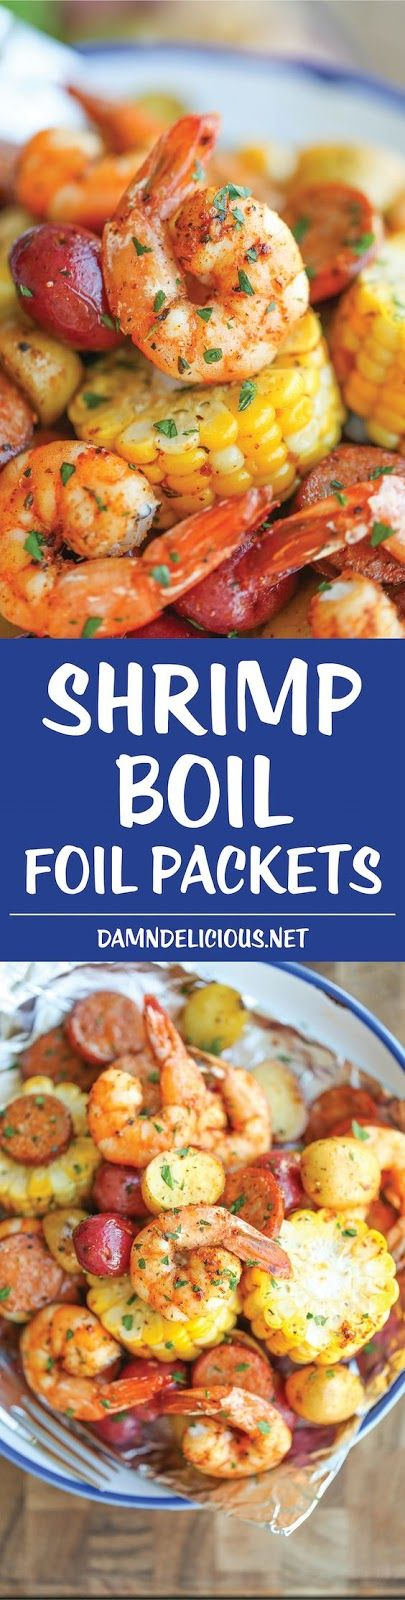 SHRIMP BOIL FOIL PACKETS | Cake And Food Recipe